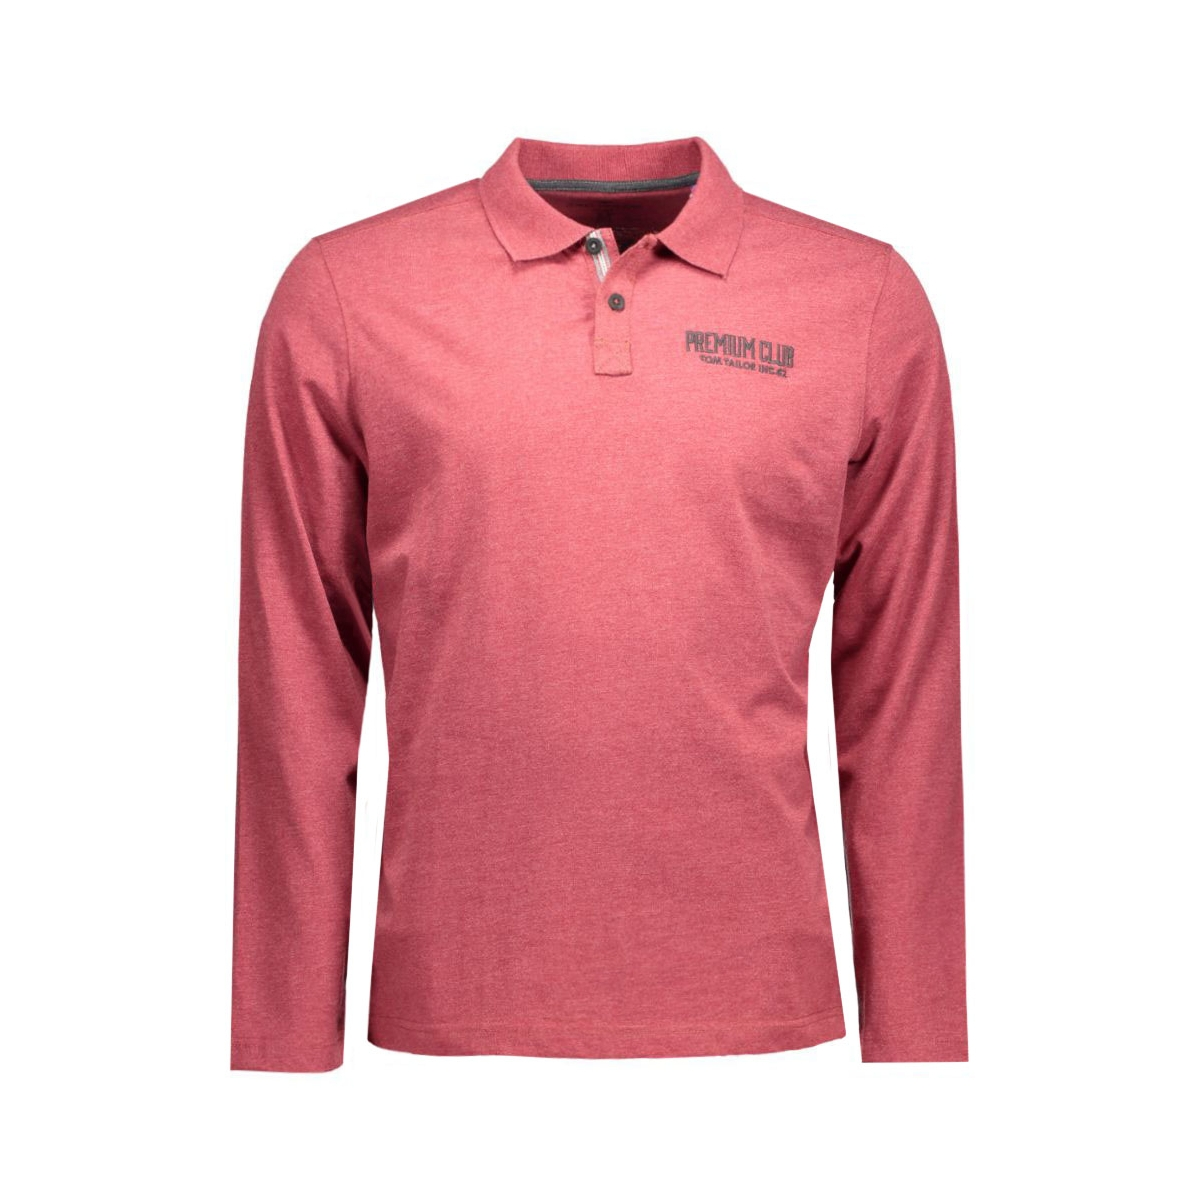 1530964.00.10 tom tailor polo 4559